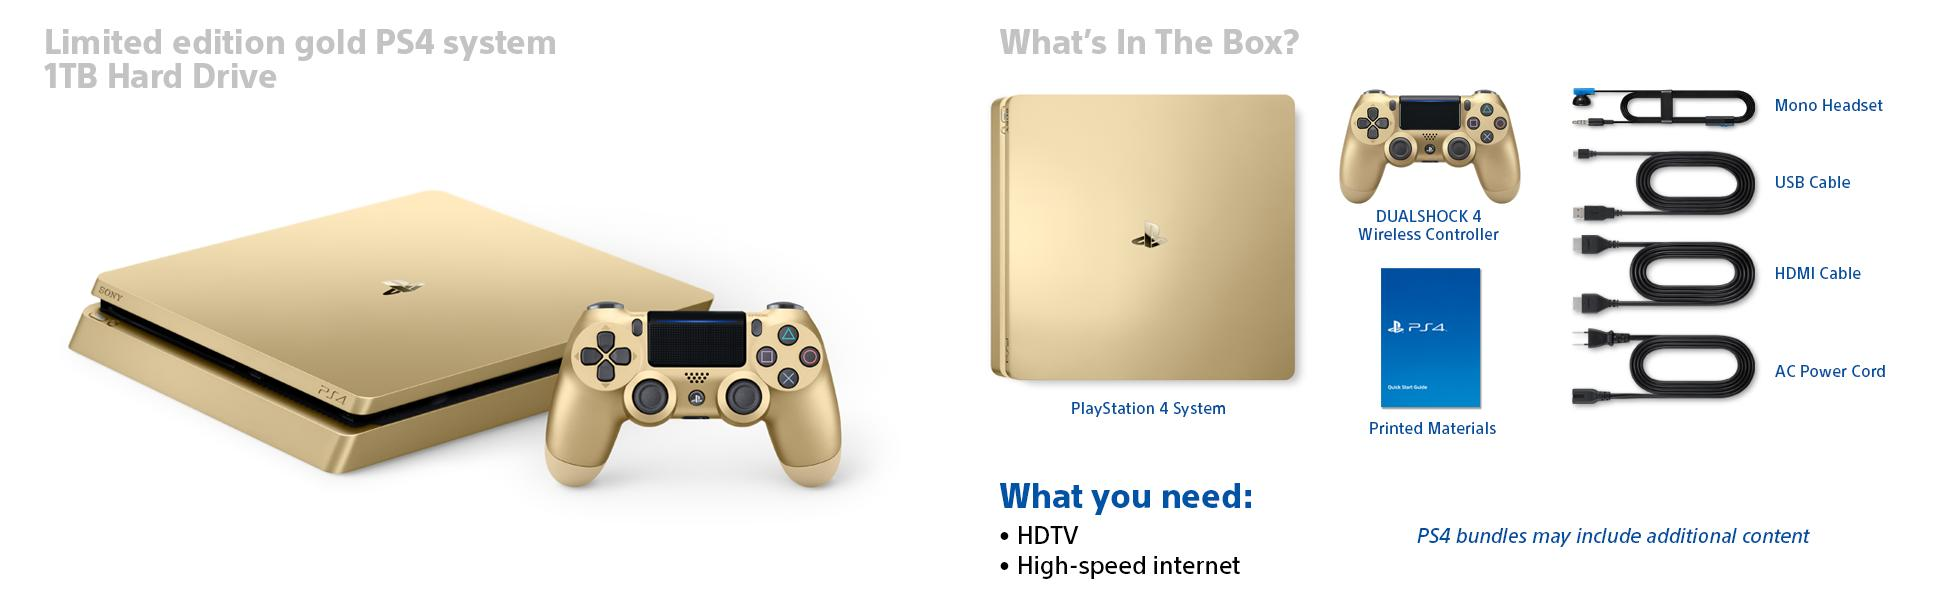 Amazon com: PlayStation 4 Slim 1TB Gold Console